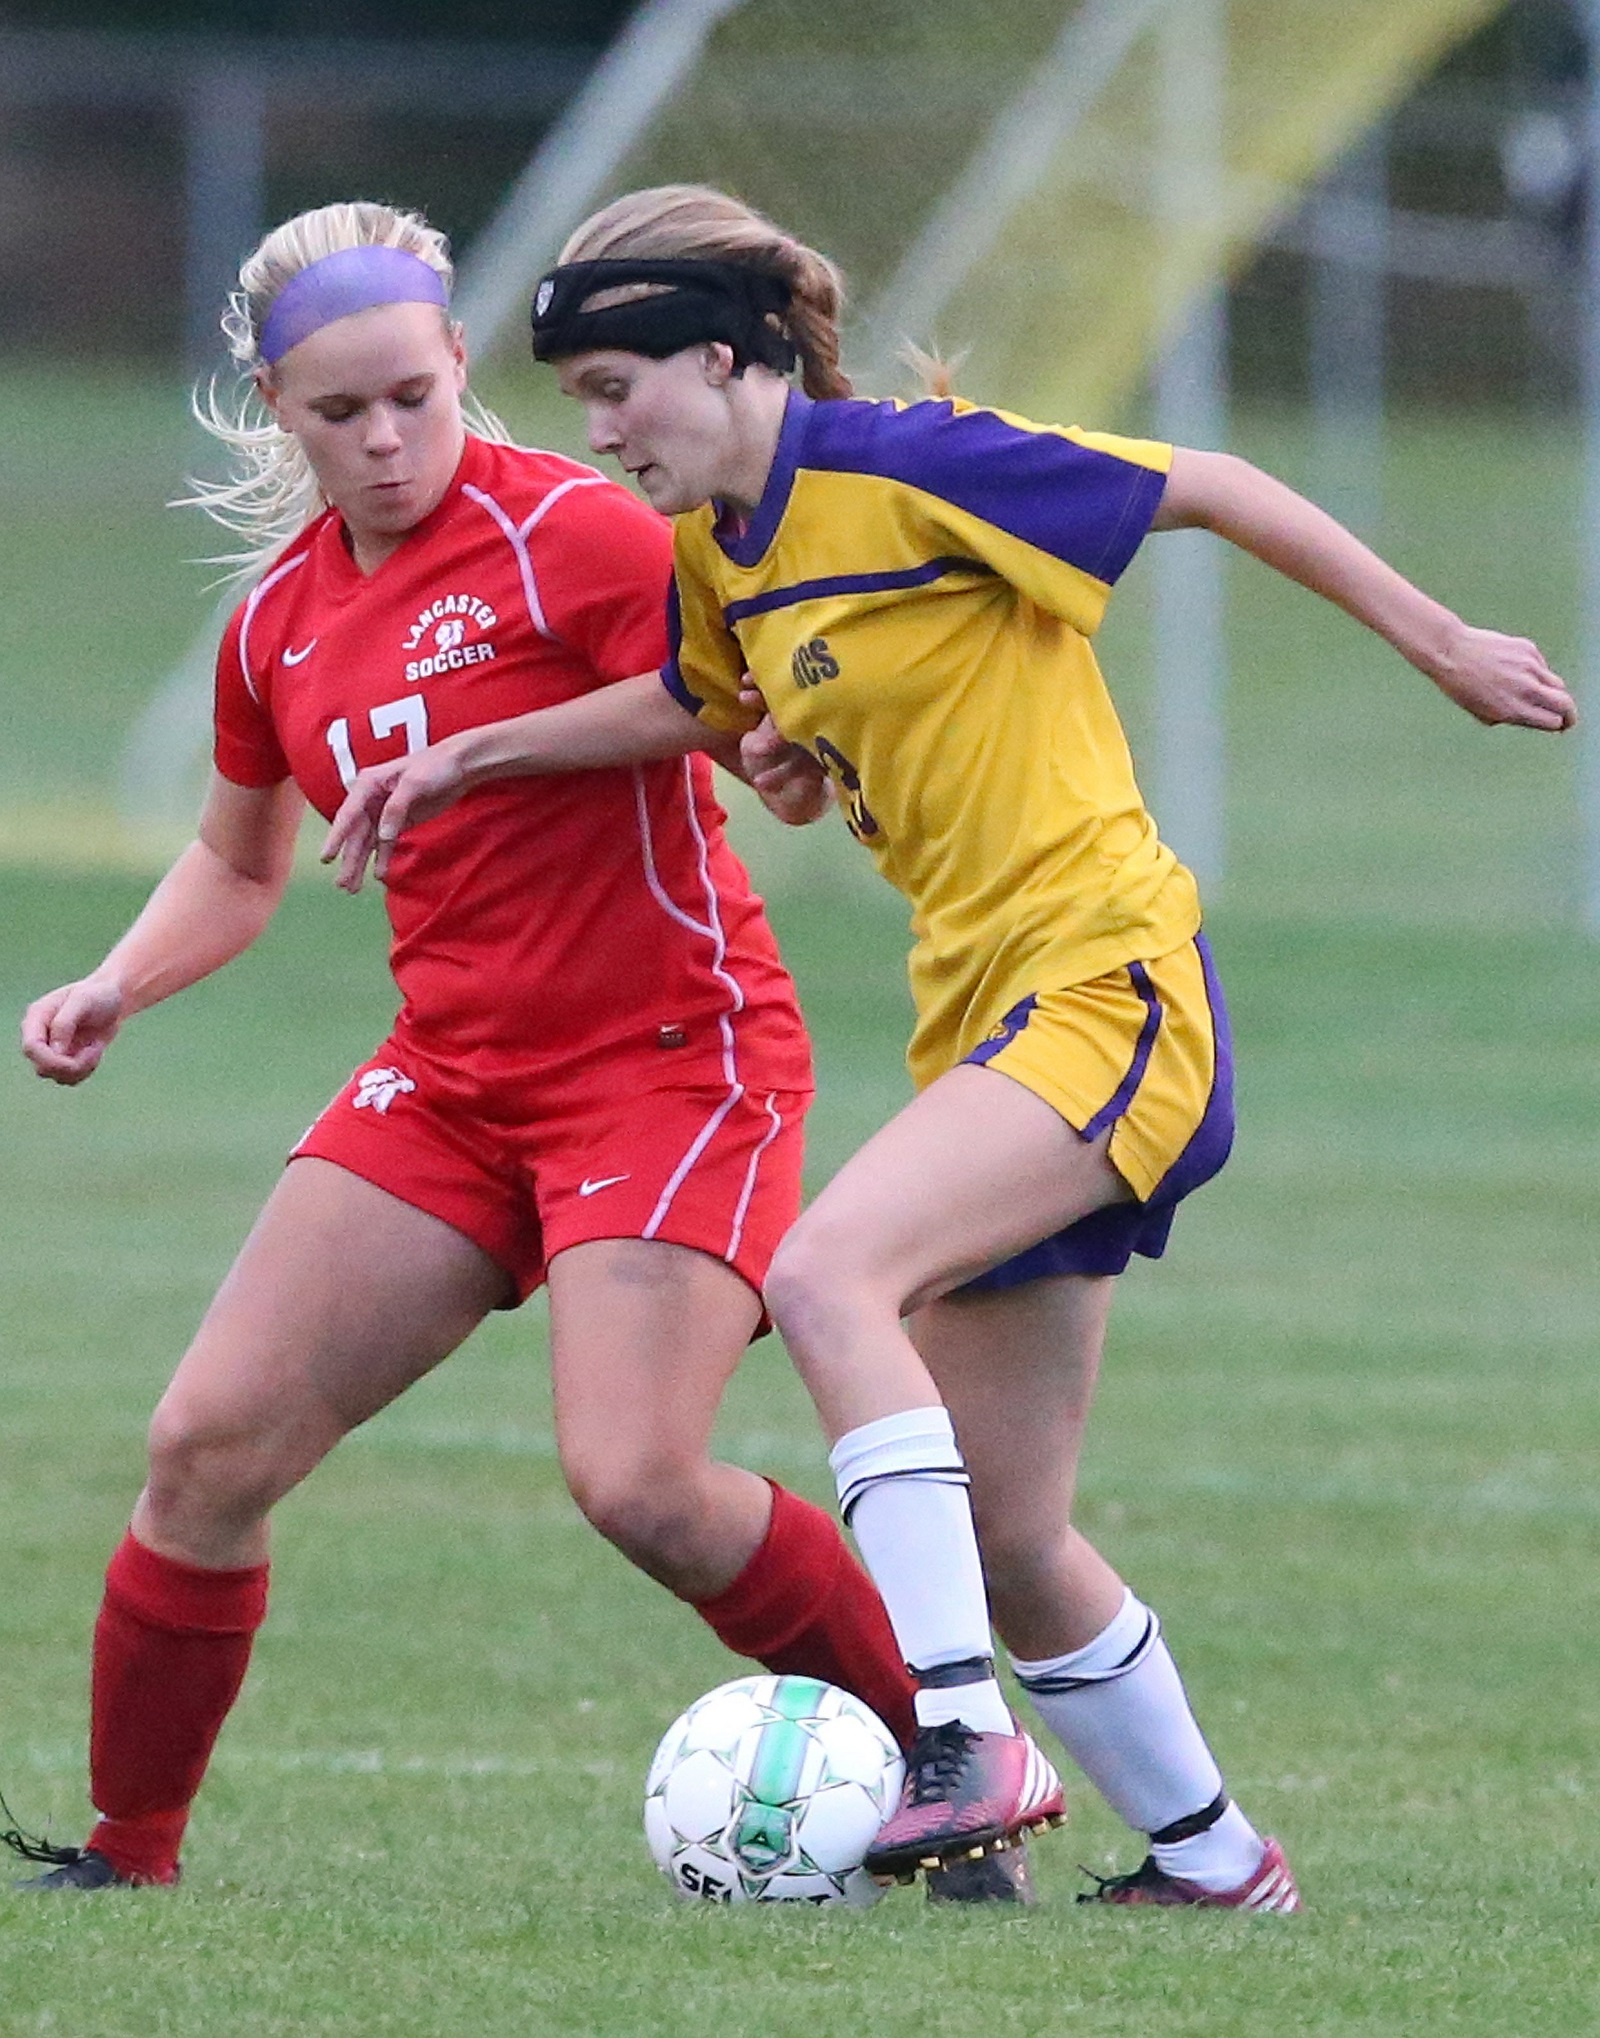 Holland's Olivia Schmidt, right, shields the ball in a 2014 high school soccer match. Schmidt now plays at Indiana Wesleyan. (James P. McCoy/Buffalo News file photo)